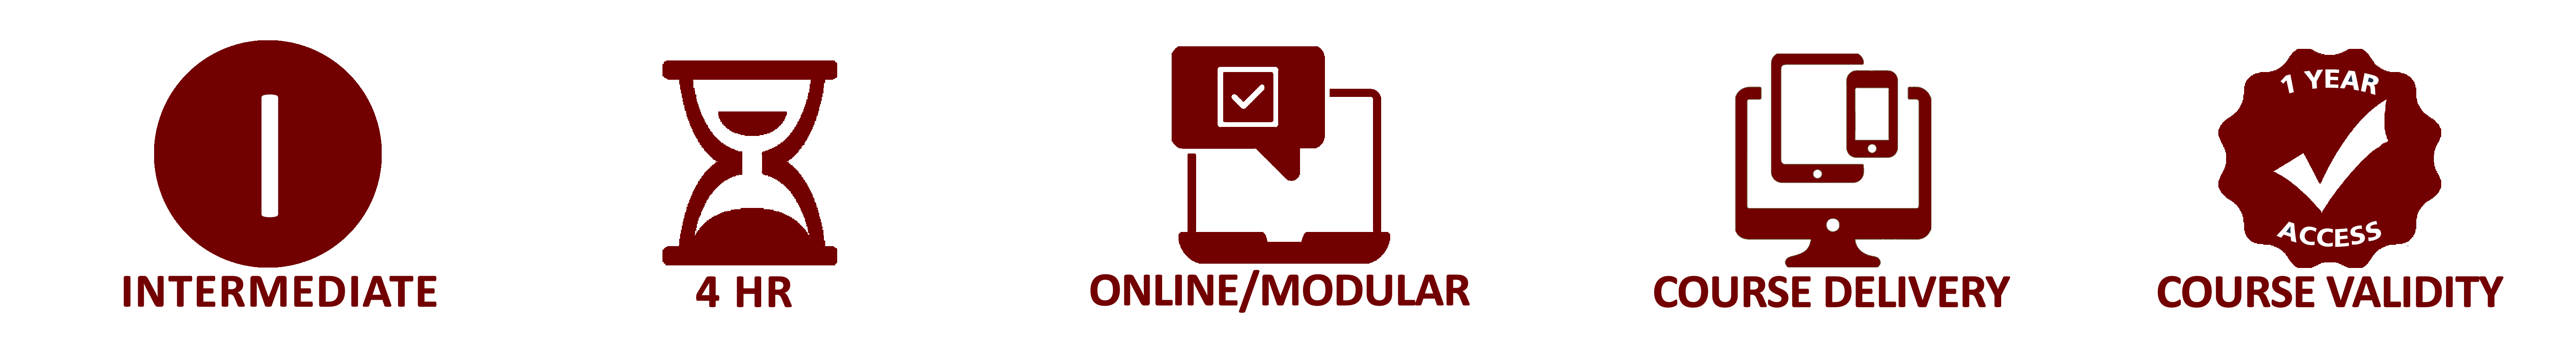 Organising and Delegating - Online Training Course - Mandatory Compliance UK - Icon -